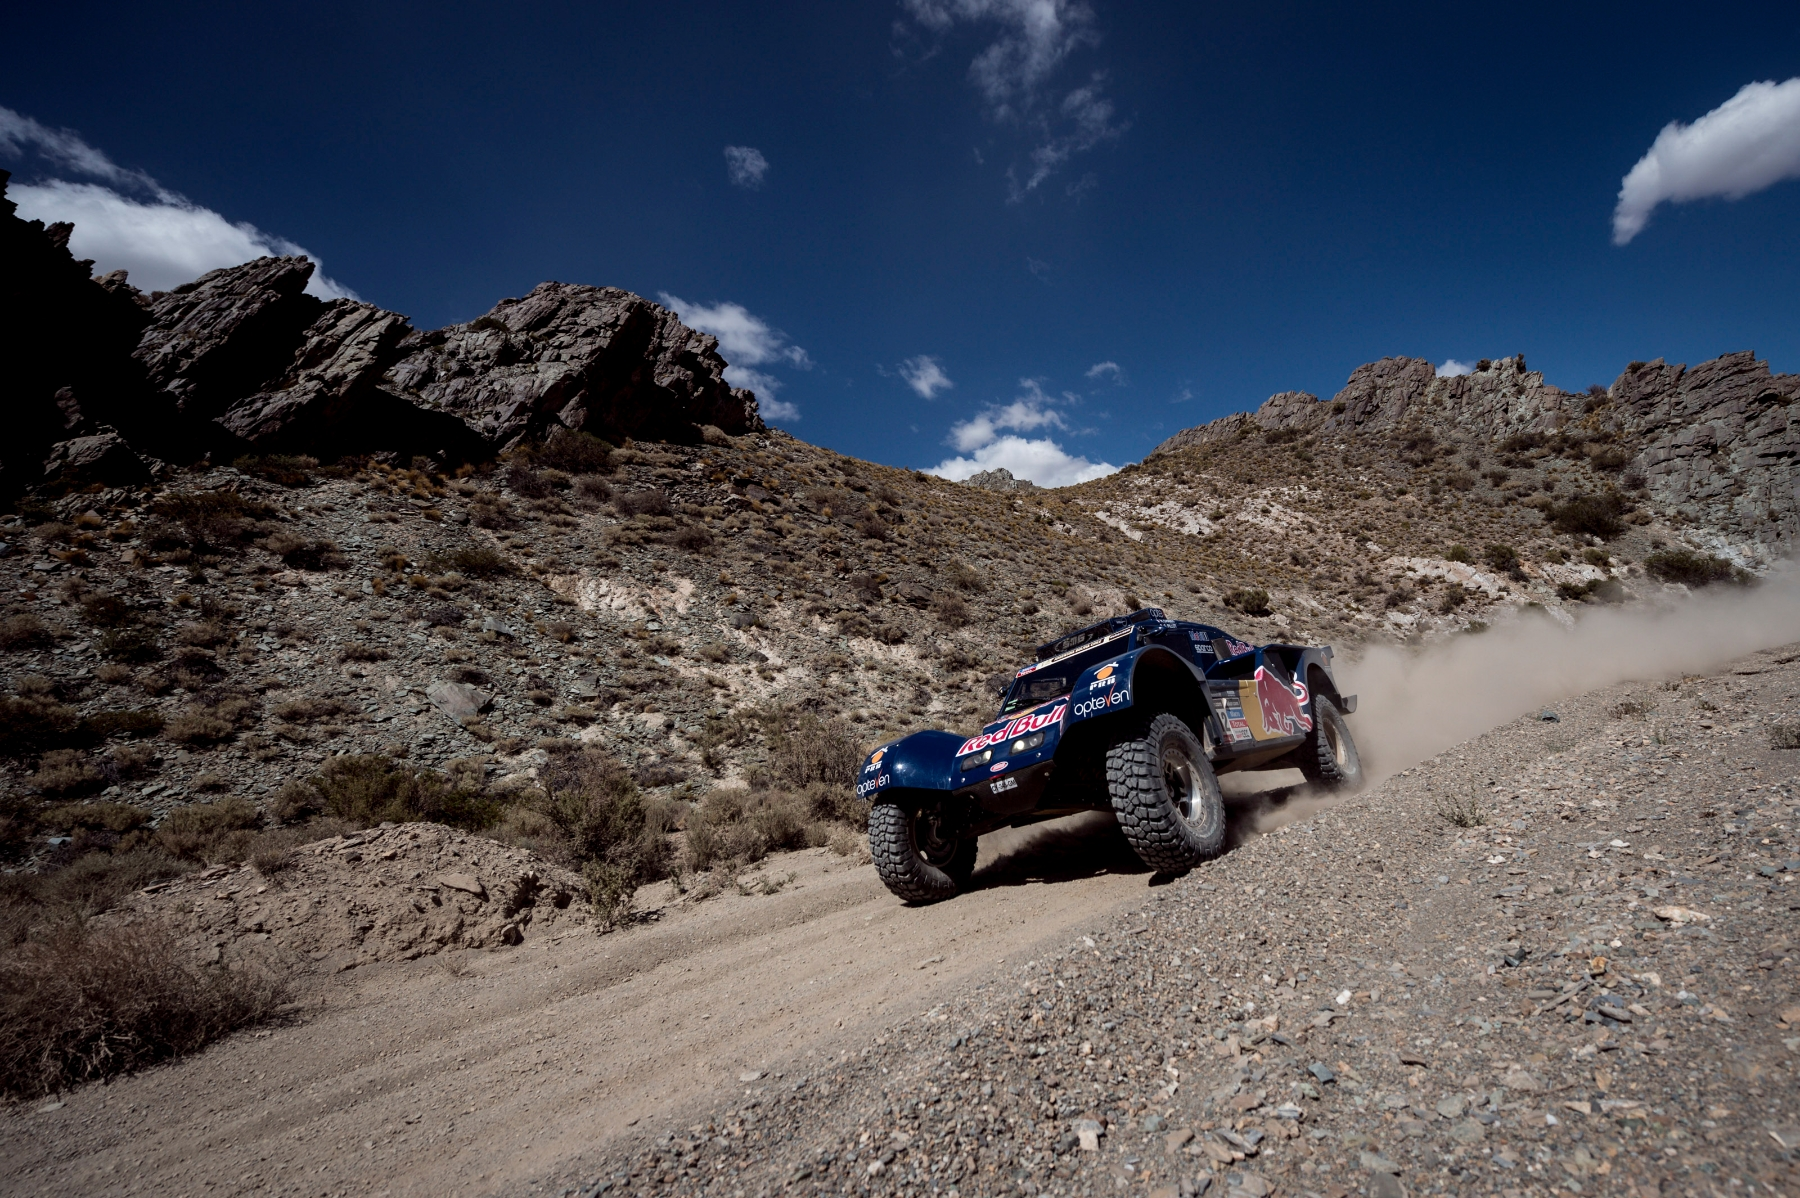 Ronan Chabot (driver) and Gilles Pillot (co-driver) race during the 3rd stage of Dakar Rally from San Rafael to San Juan, Argentina on January 7th, 2014